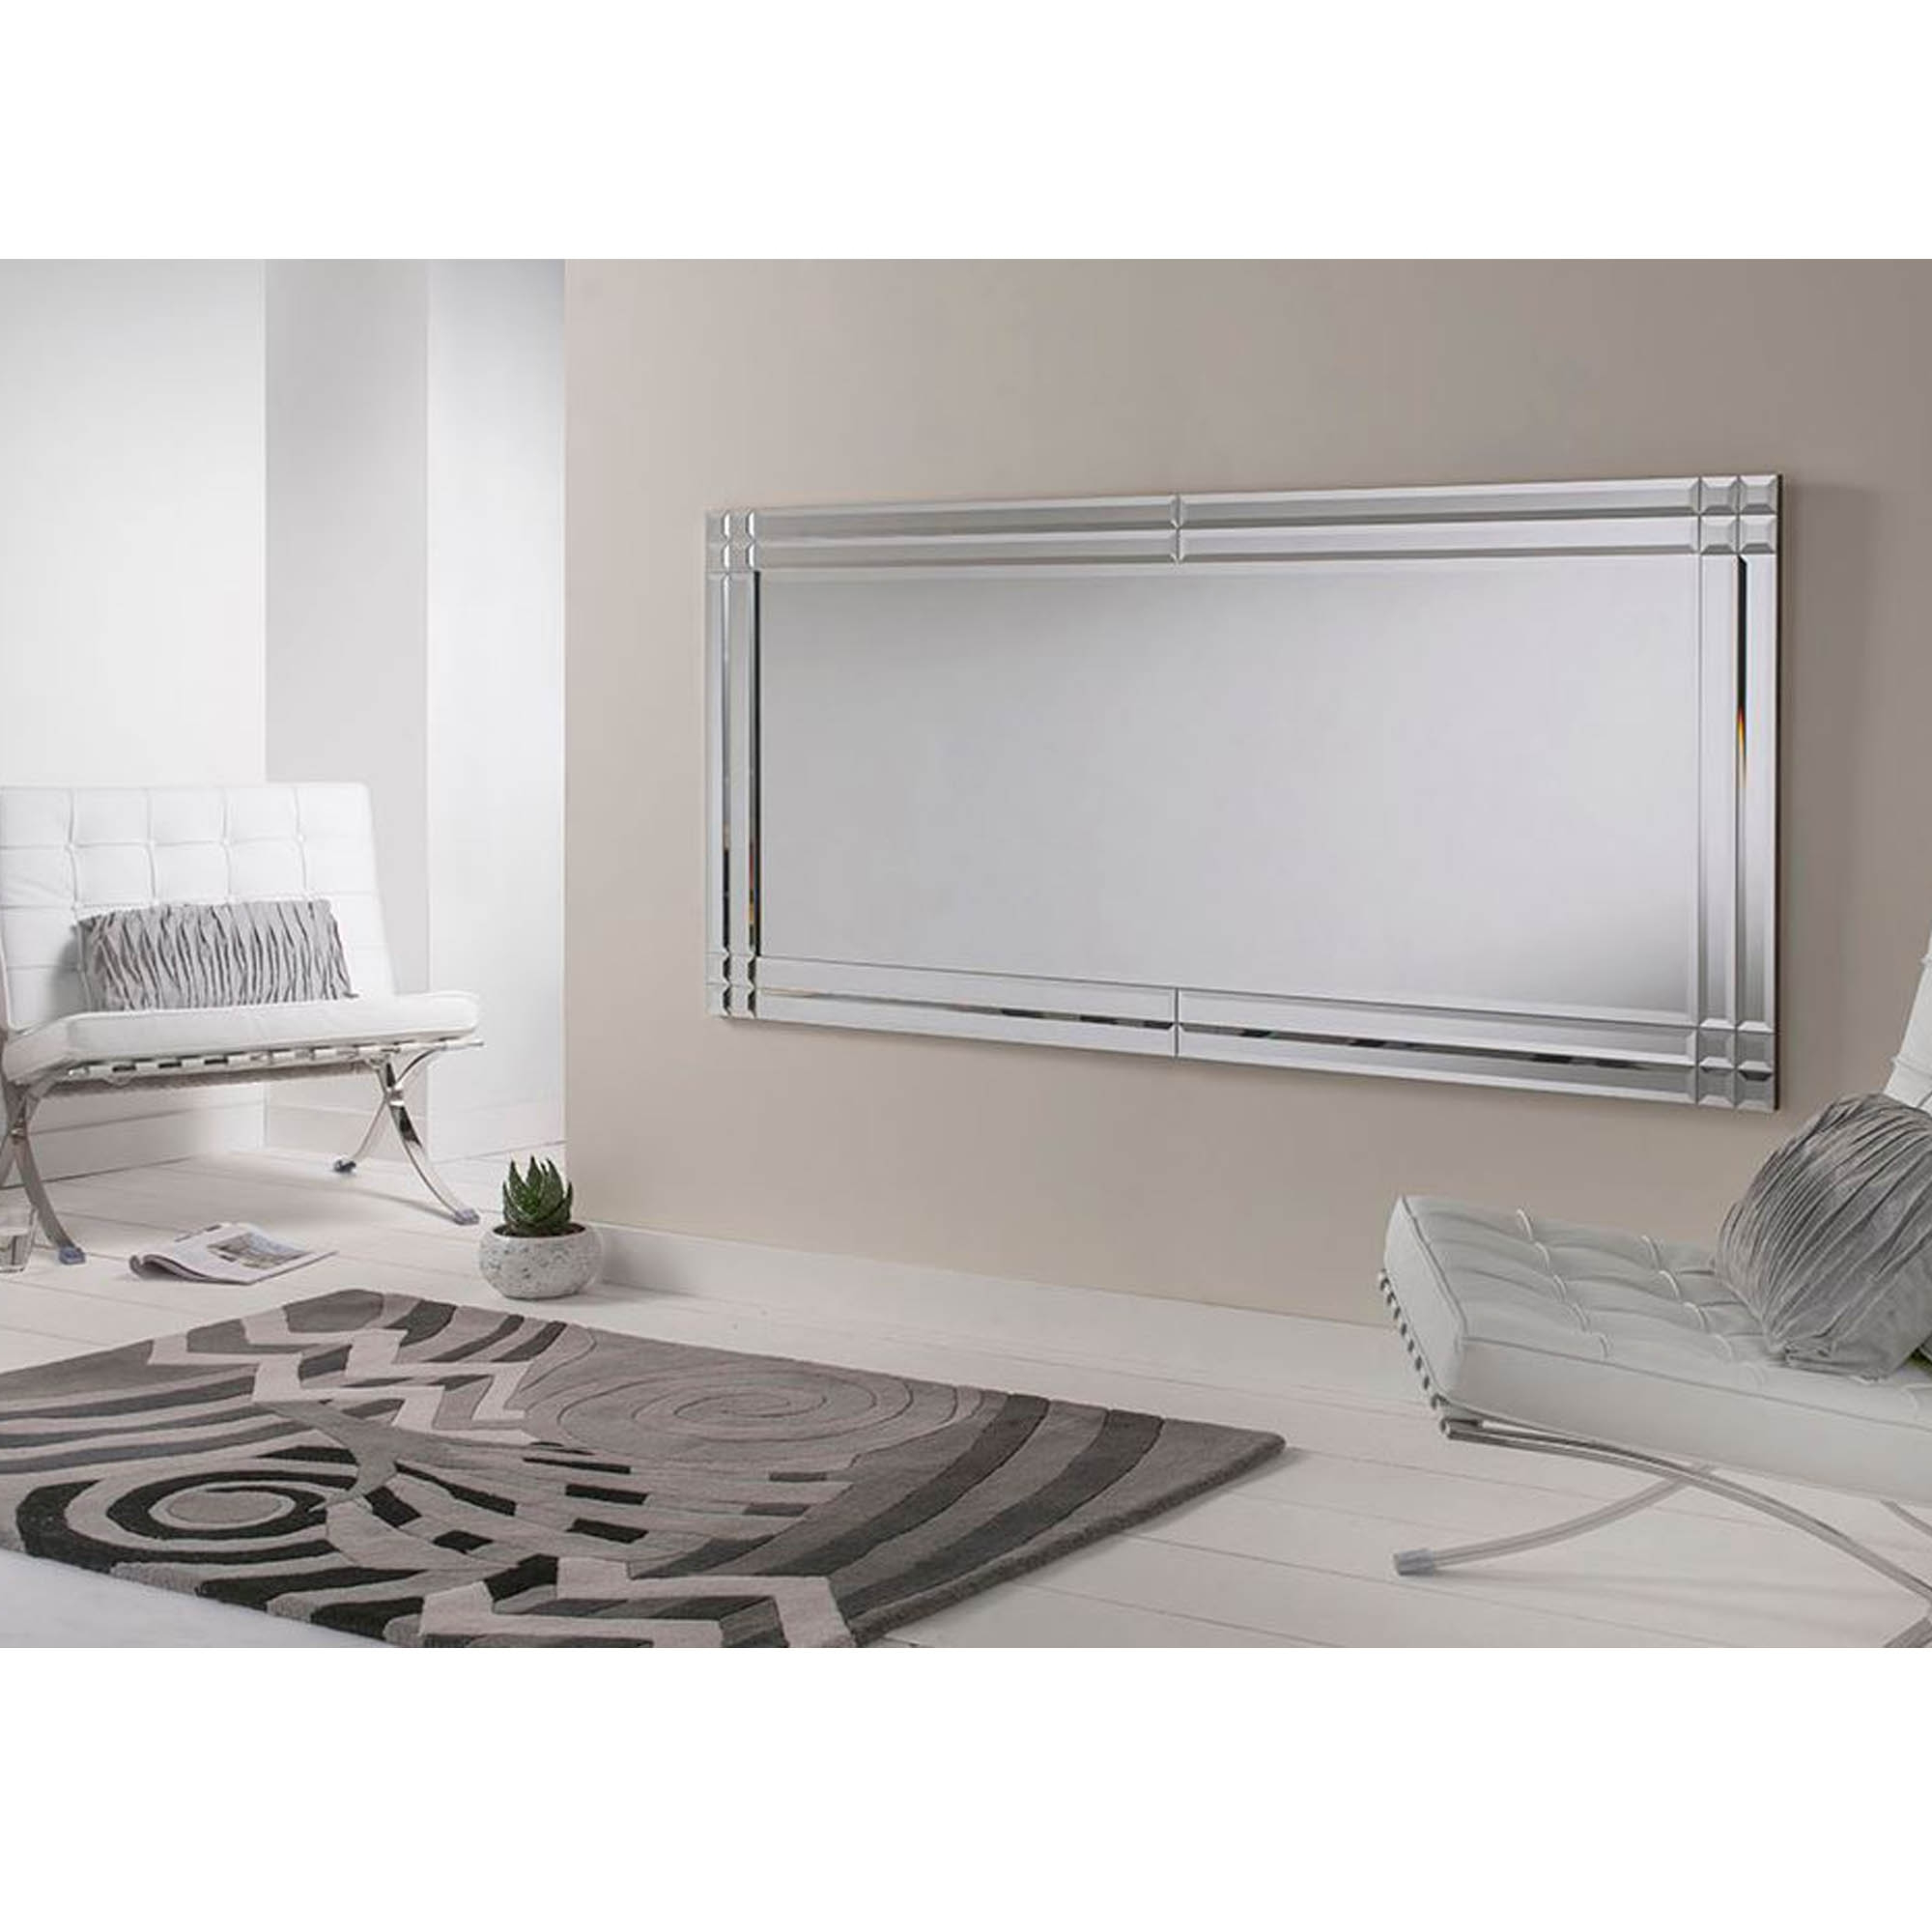 Large Bevelled Rectangular Wall Mirror Throughout 2019 Oblong Wall Mirrors (View 18 of 20)